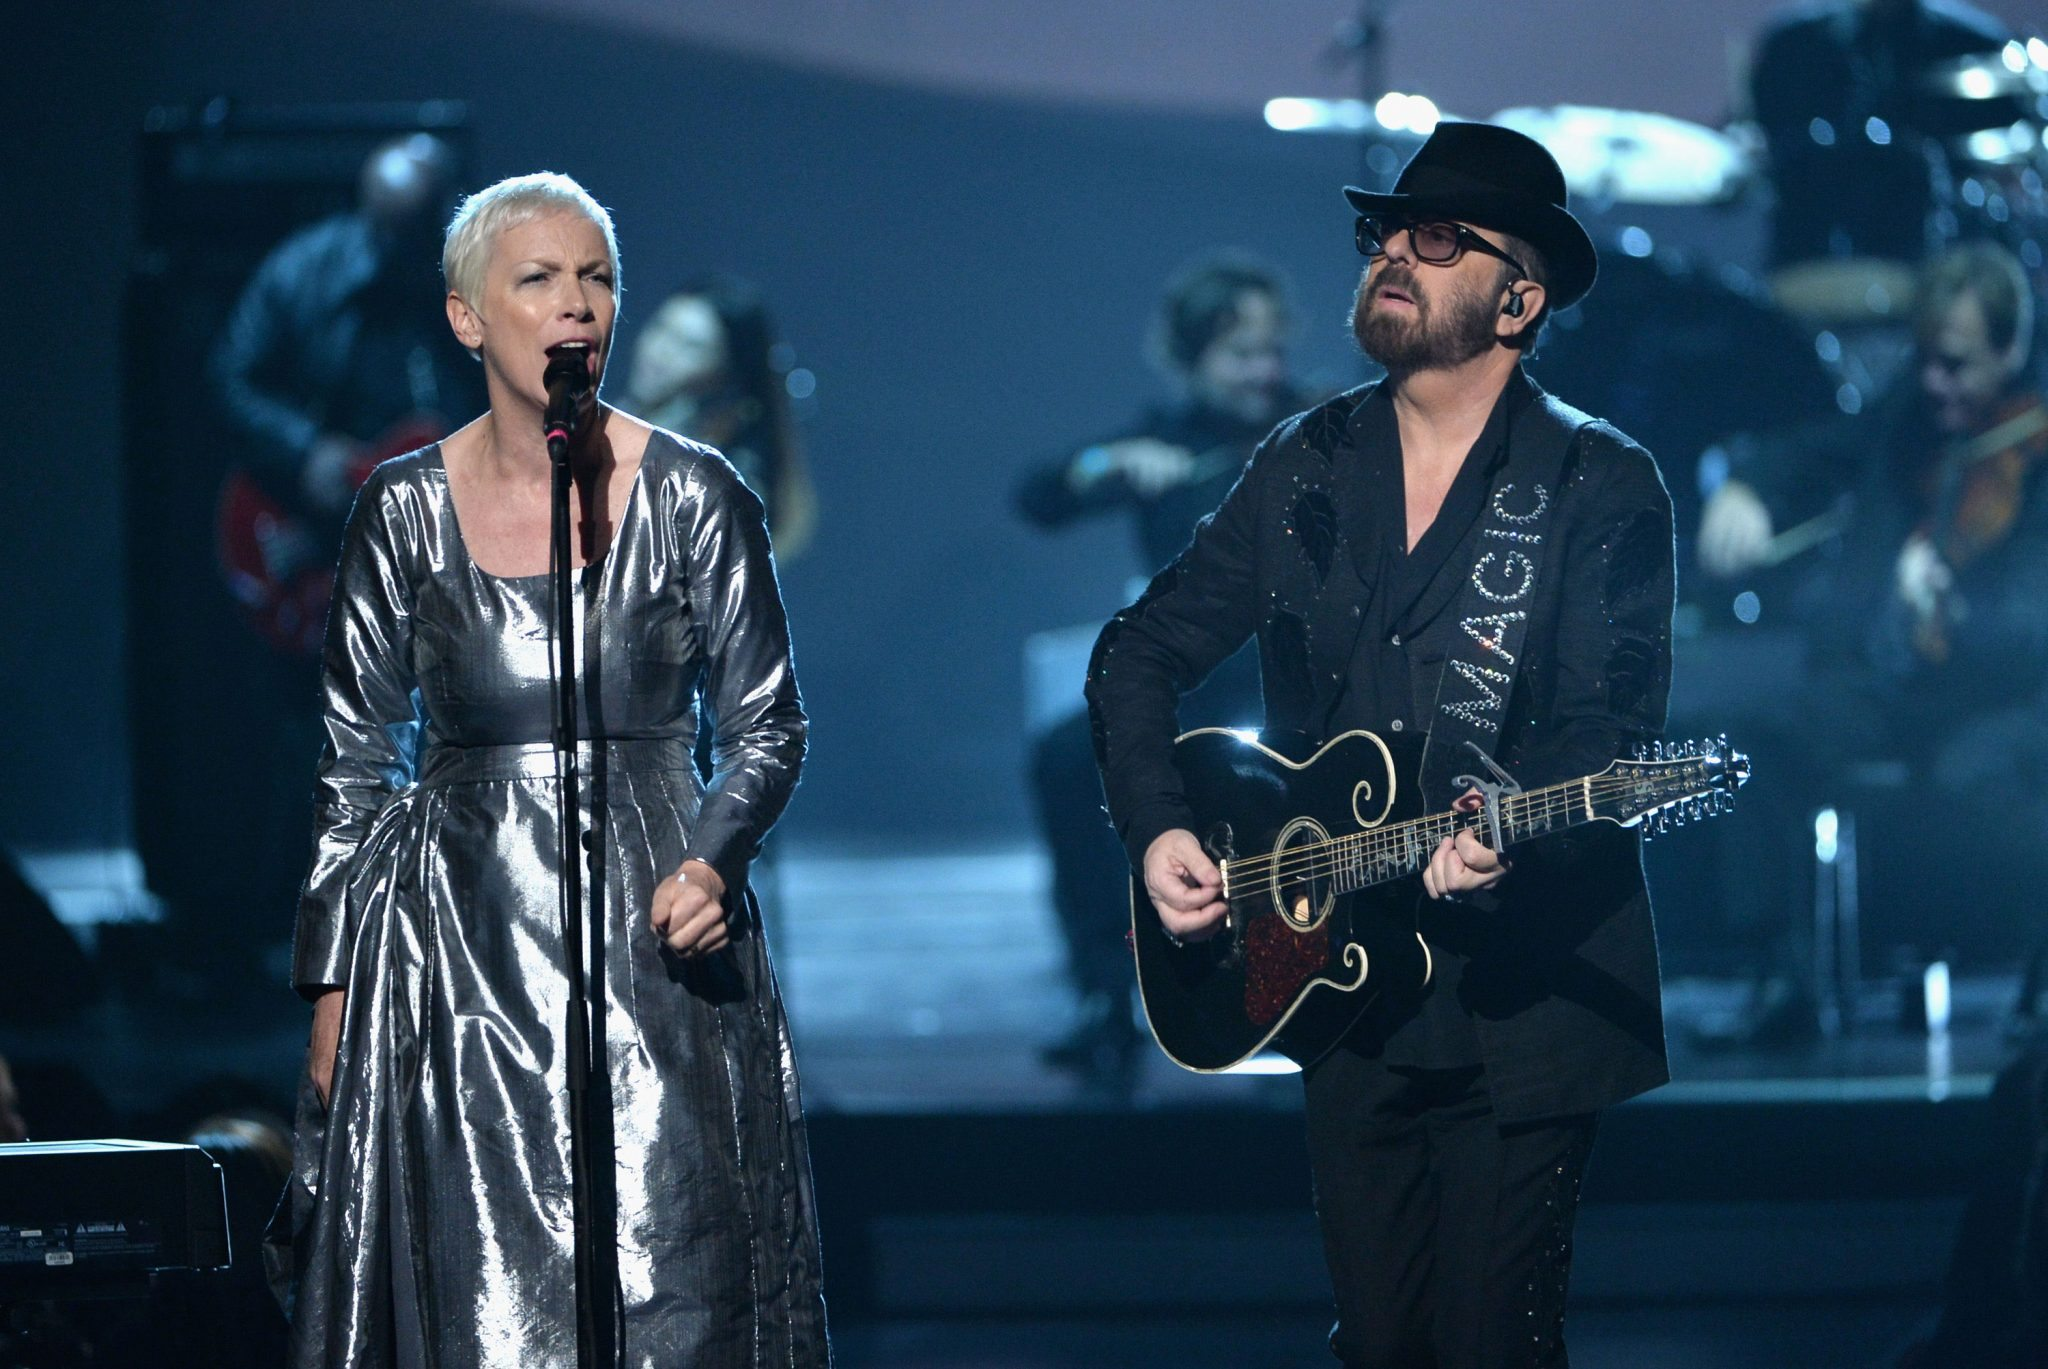 Eurythmics were no fools in LA last night – Our review!